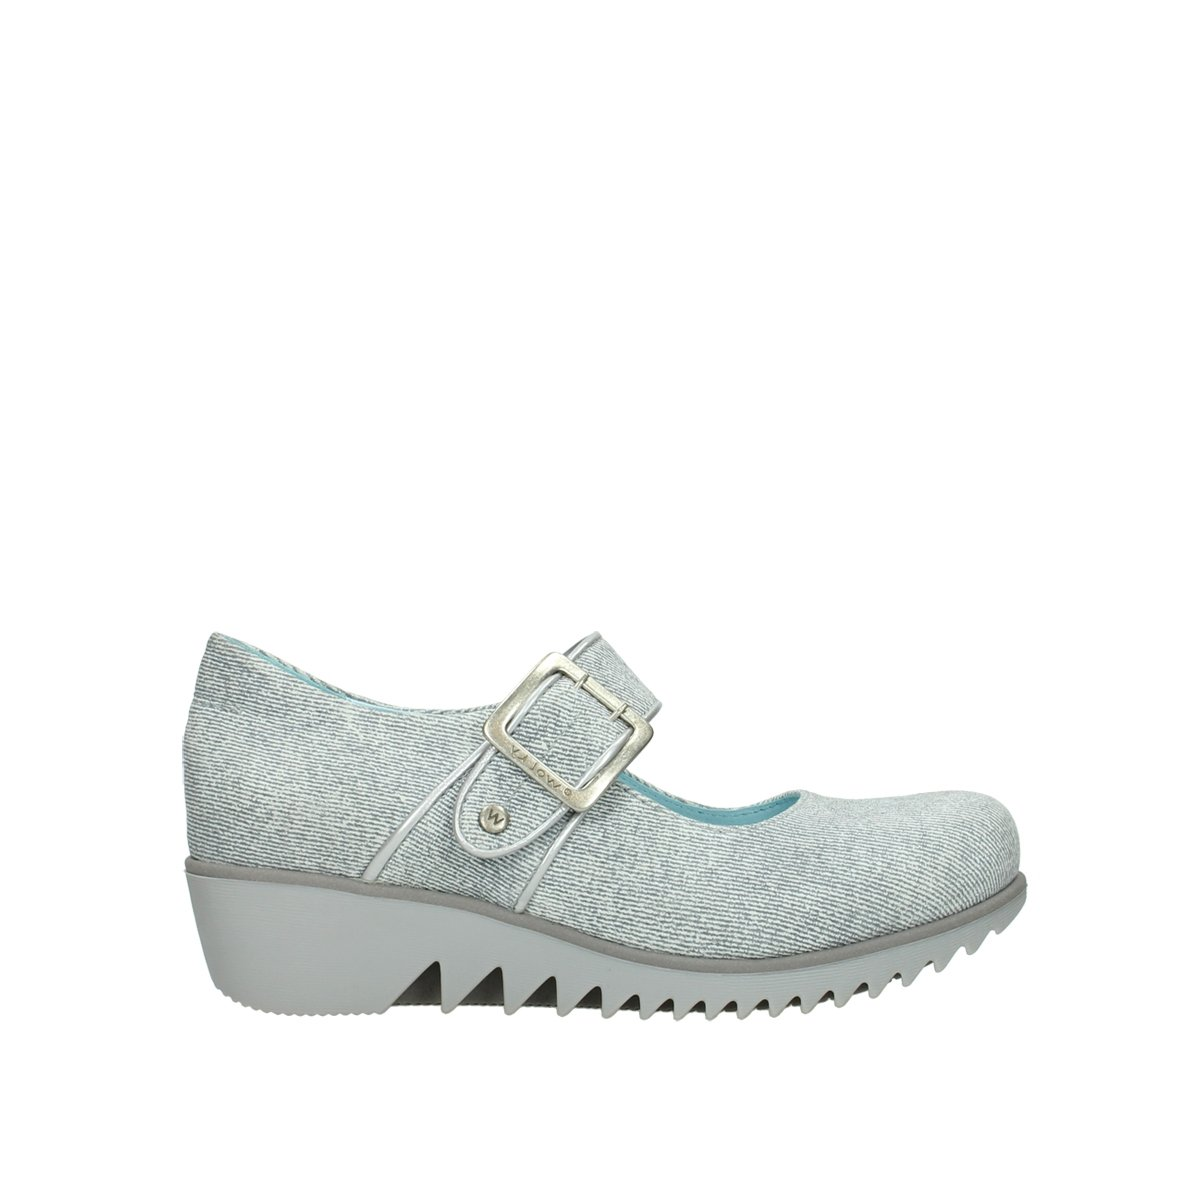 Wolky Comfort Mary Janes Silky B079MBHY4Y 40 M EU|49122 Offwhite-grey